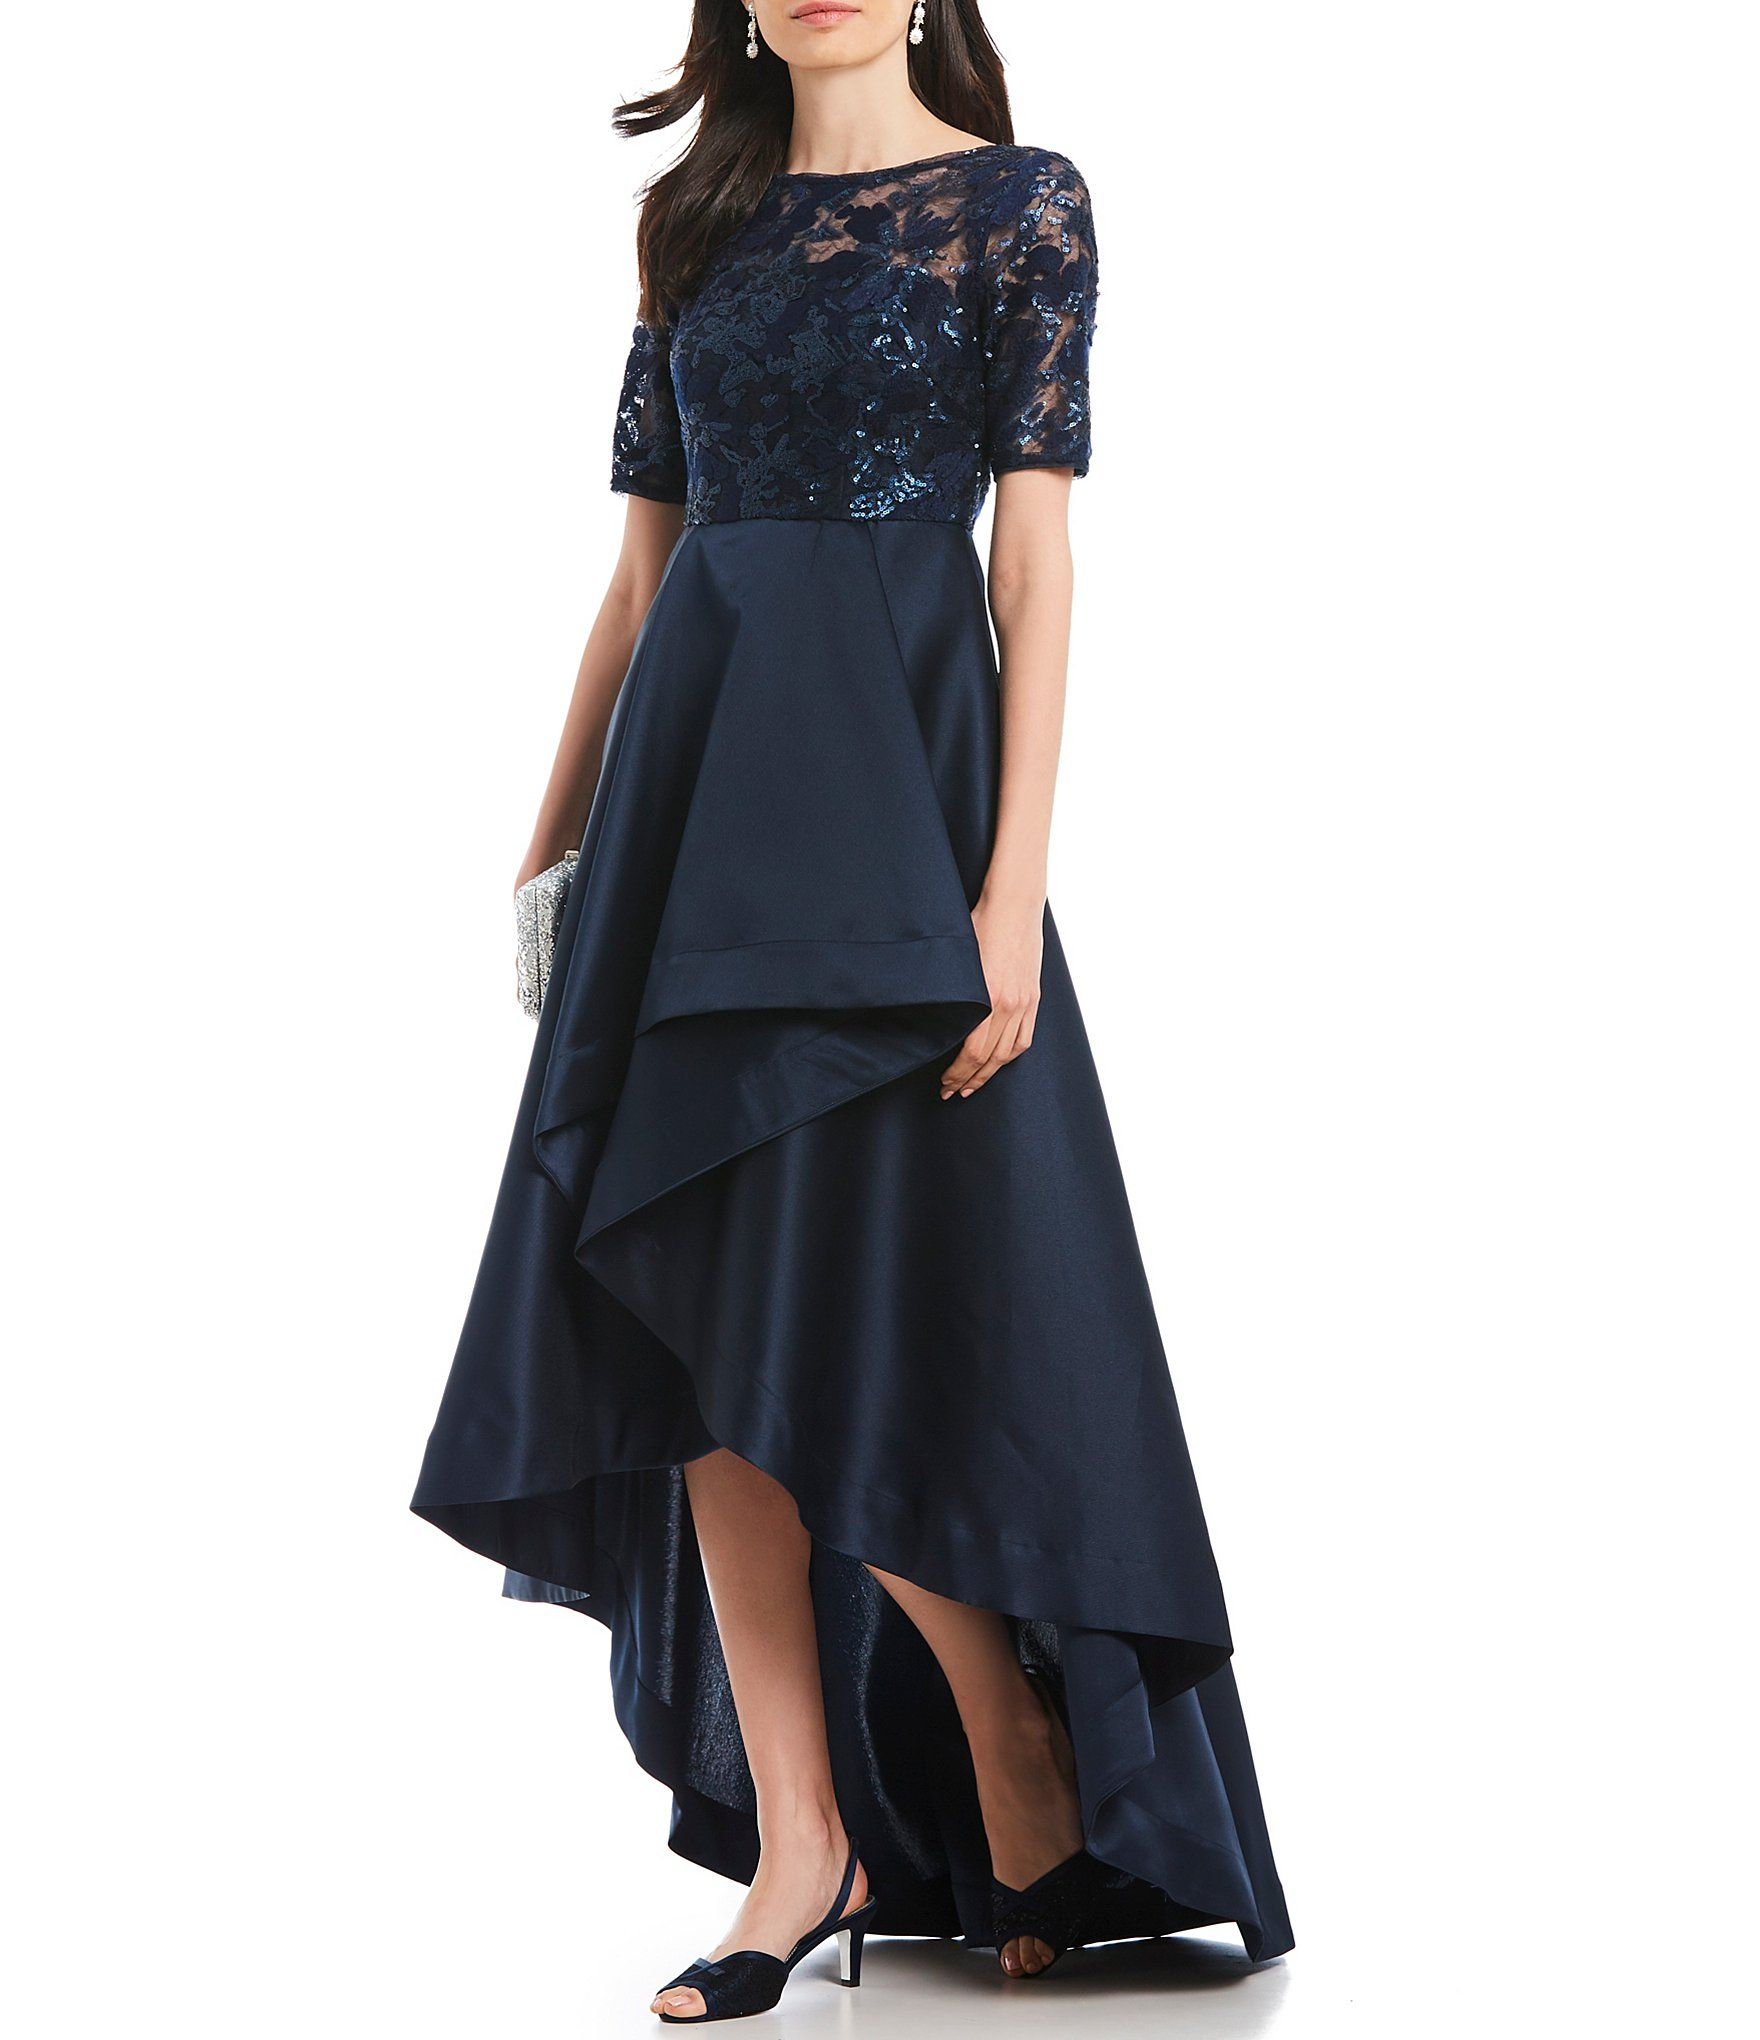 3e34bf2220a Shop for Adrianna Papell Sequin Bodice Hi-Low Gown at Dillards.com. Visit  Dillards.com to find clothing